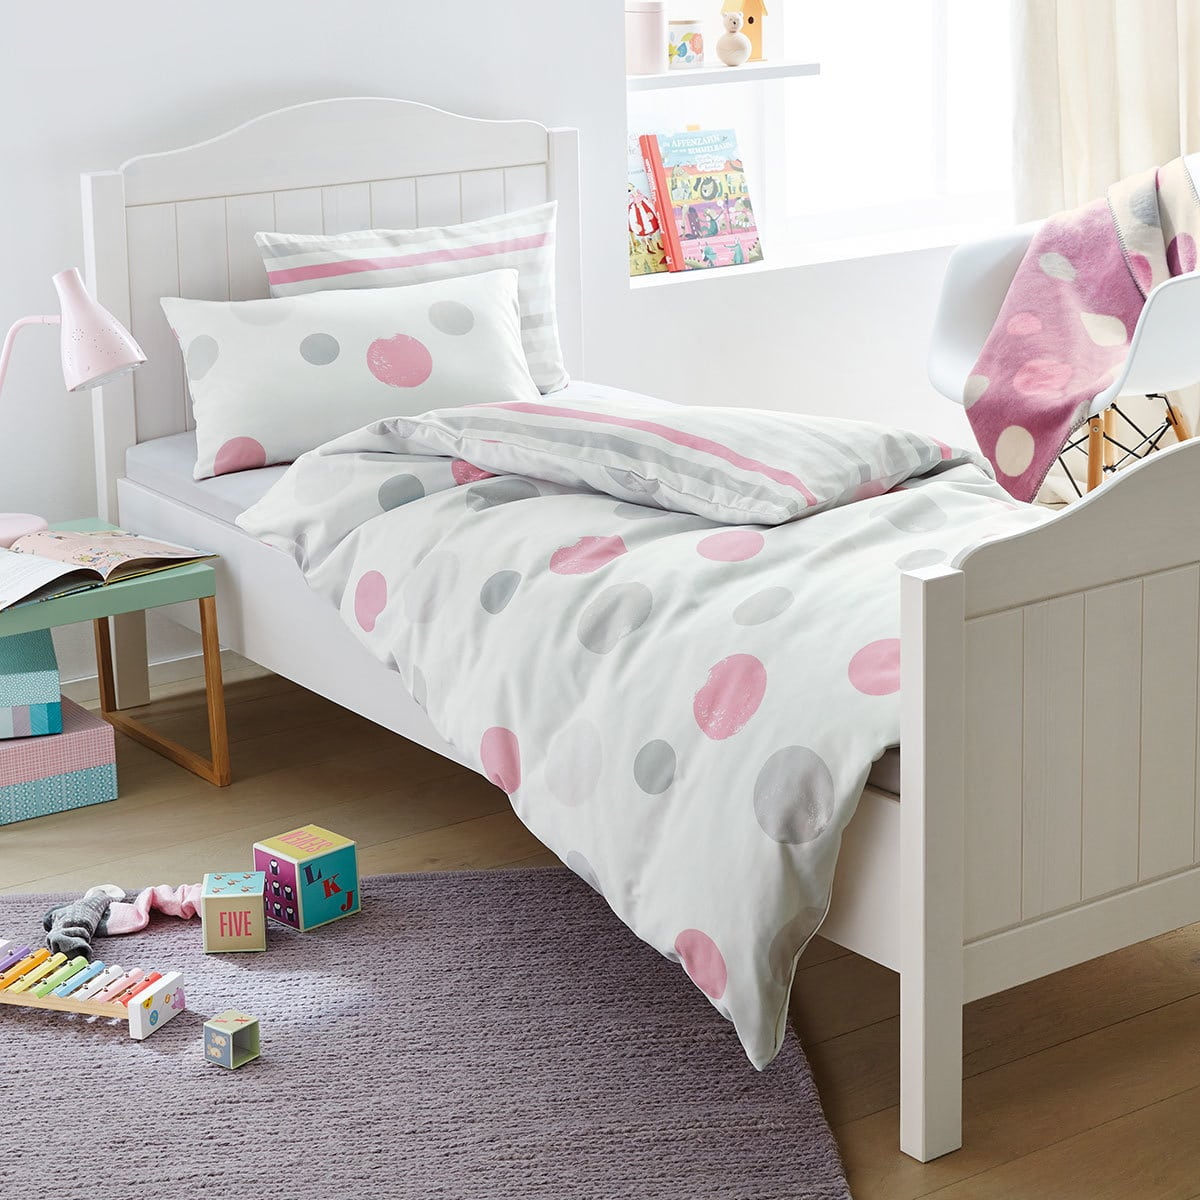 s oliver flanell bettw sche punkte rosa g nstig online kaufen bei bettwaren shop. Black Bedroom Furniture Sets. Home Design Ideas